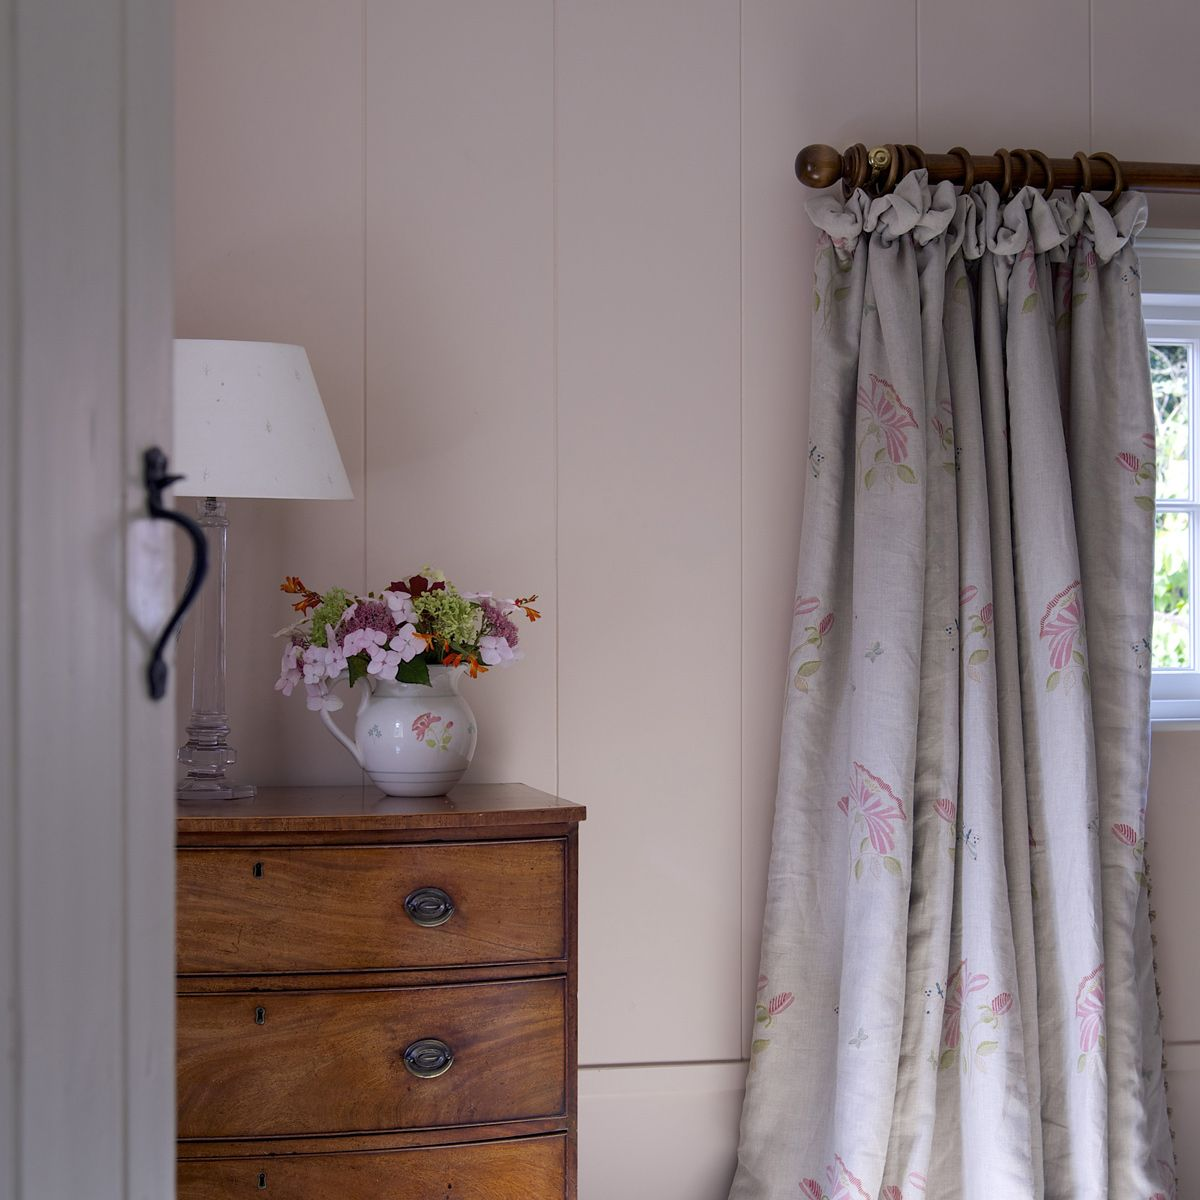 Bellas Rose Cottage Via Jennifer Beaton: 'Pale Sienna' Paint Pairs Wonderfully With The Hand